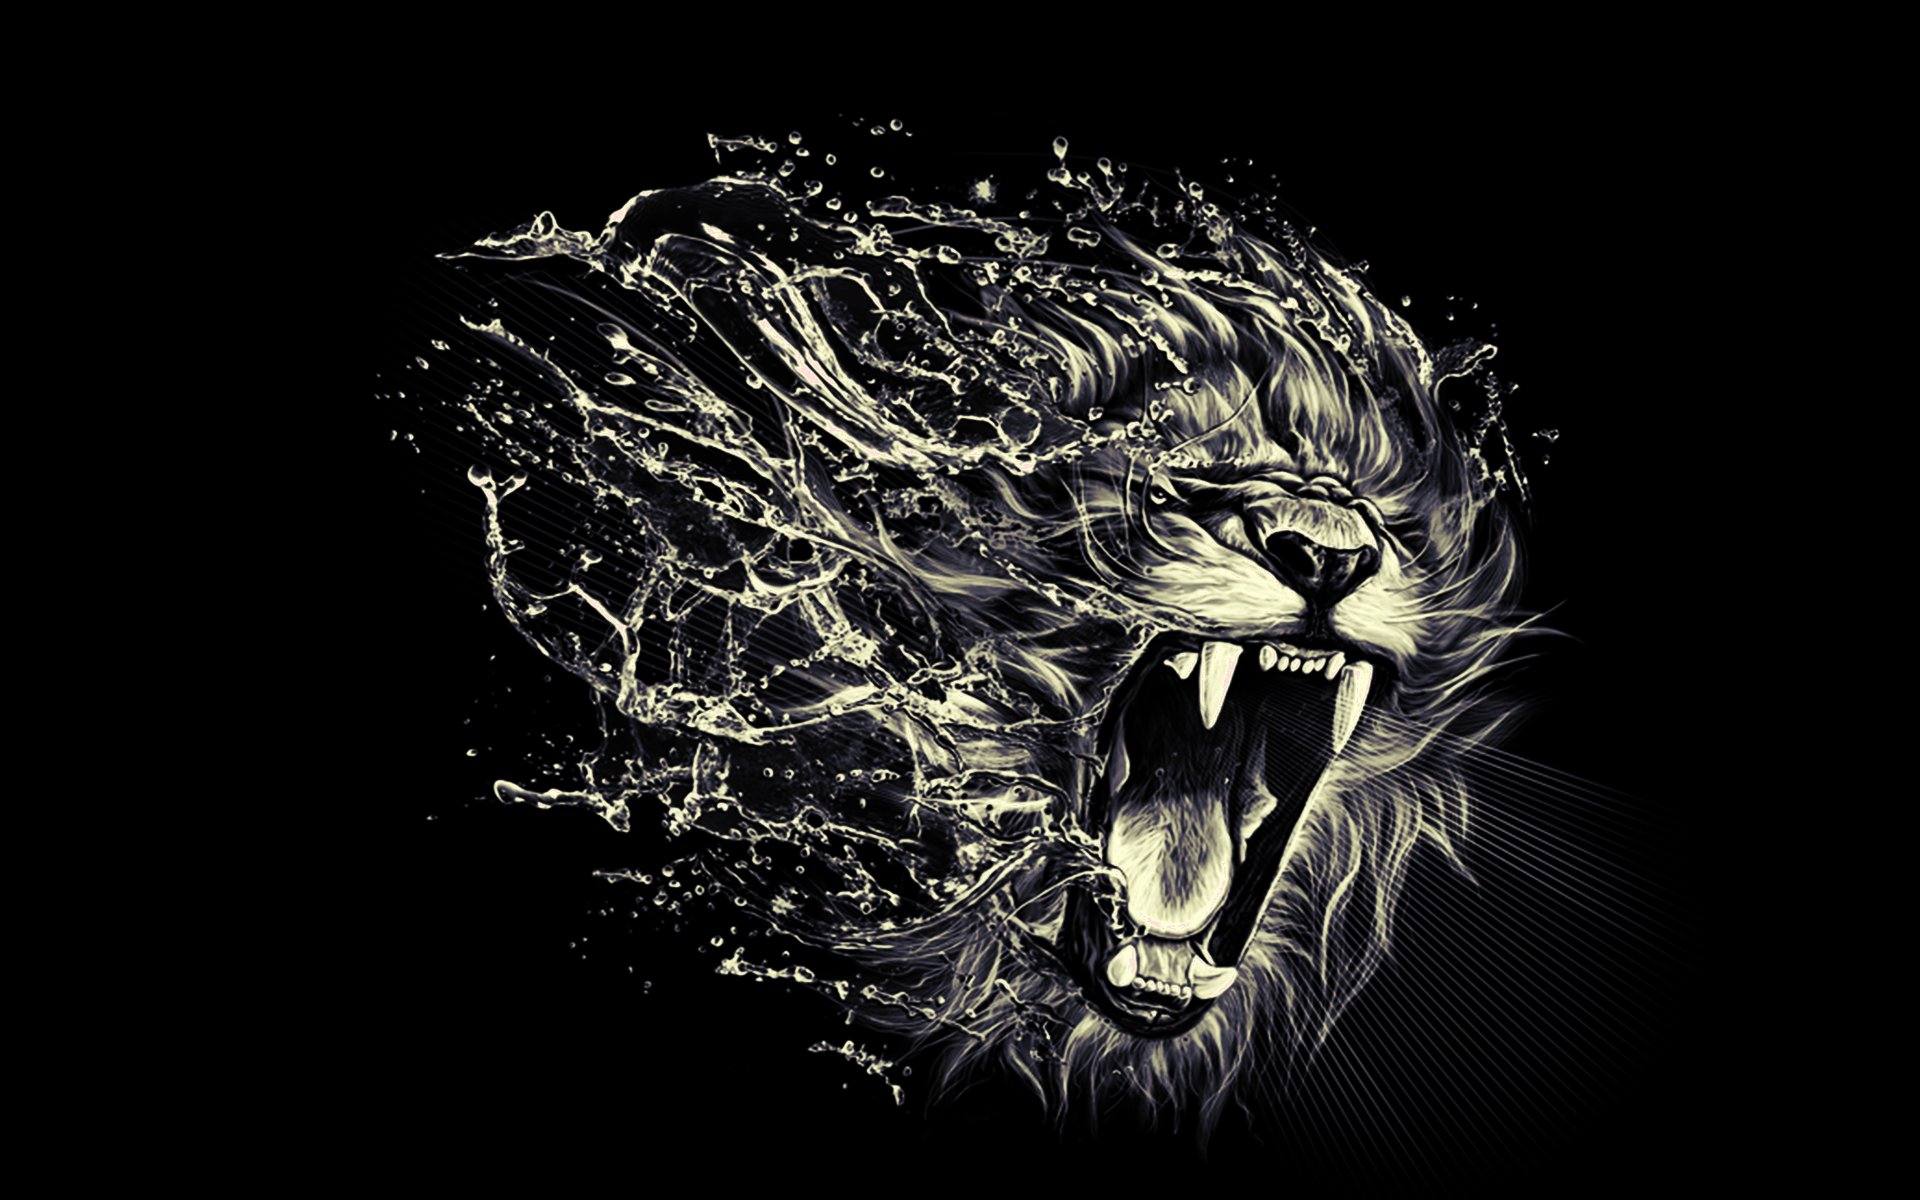 Cool Roaring Lion Wallpaper Vigorous Art 1920x1200